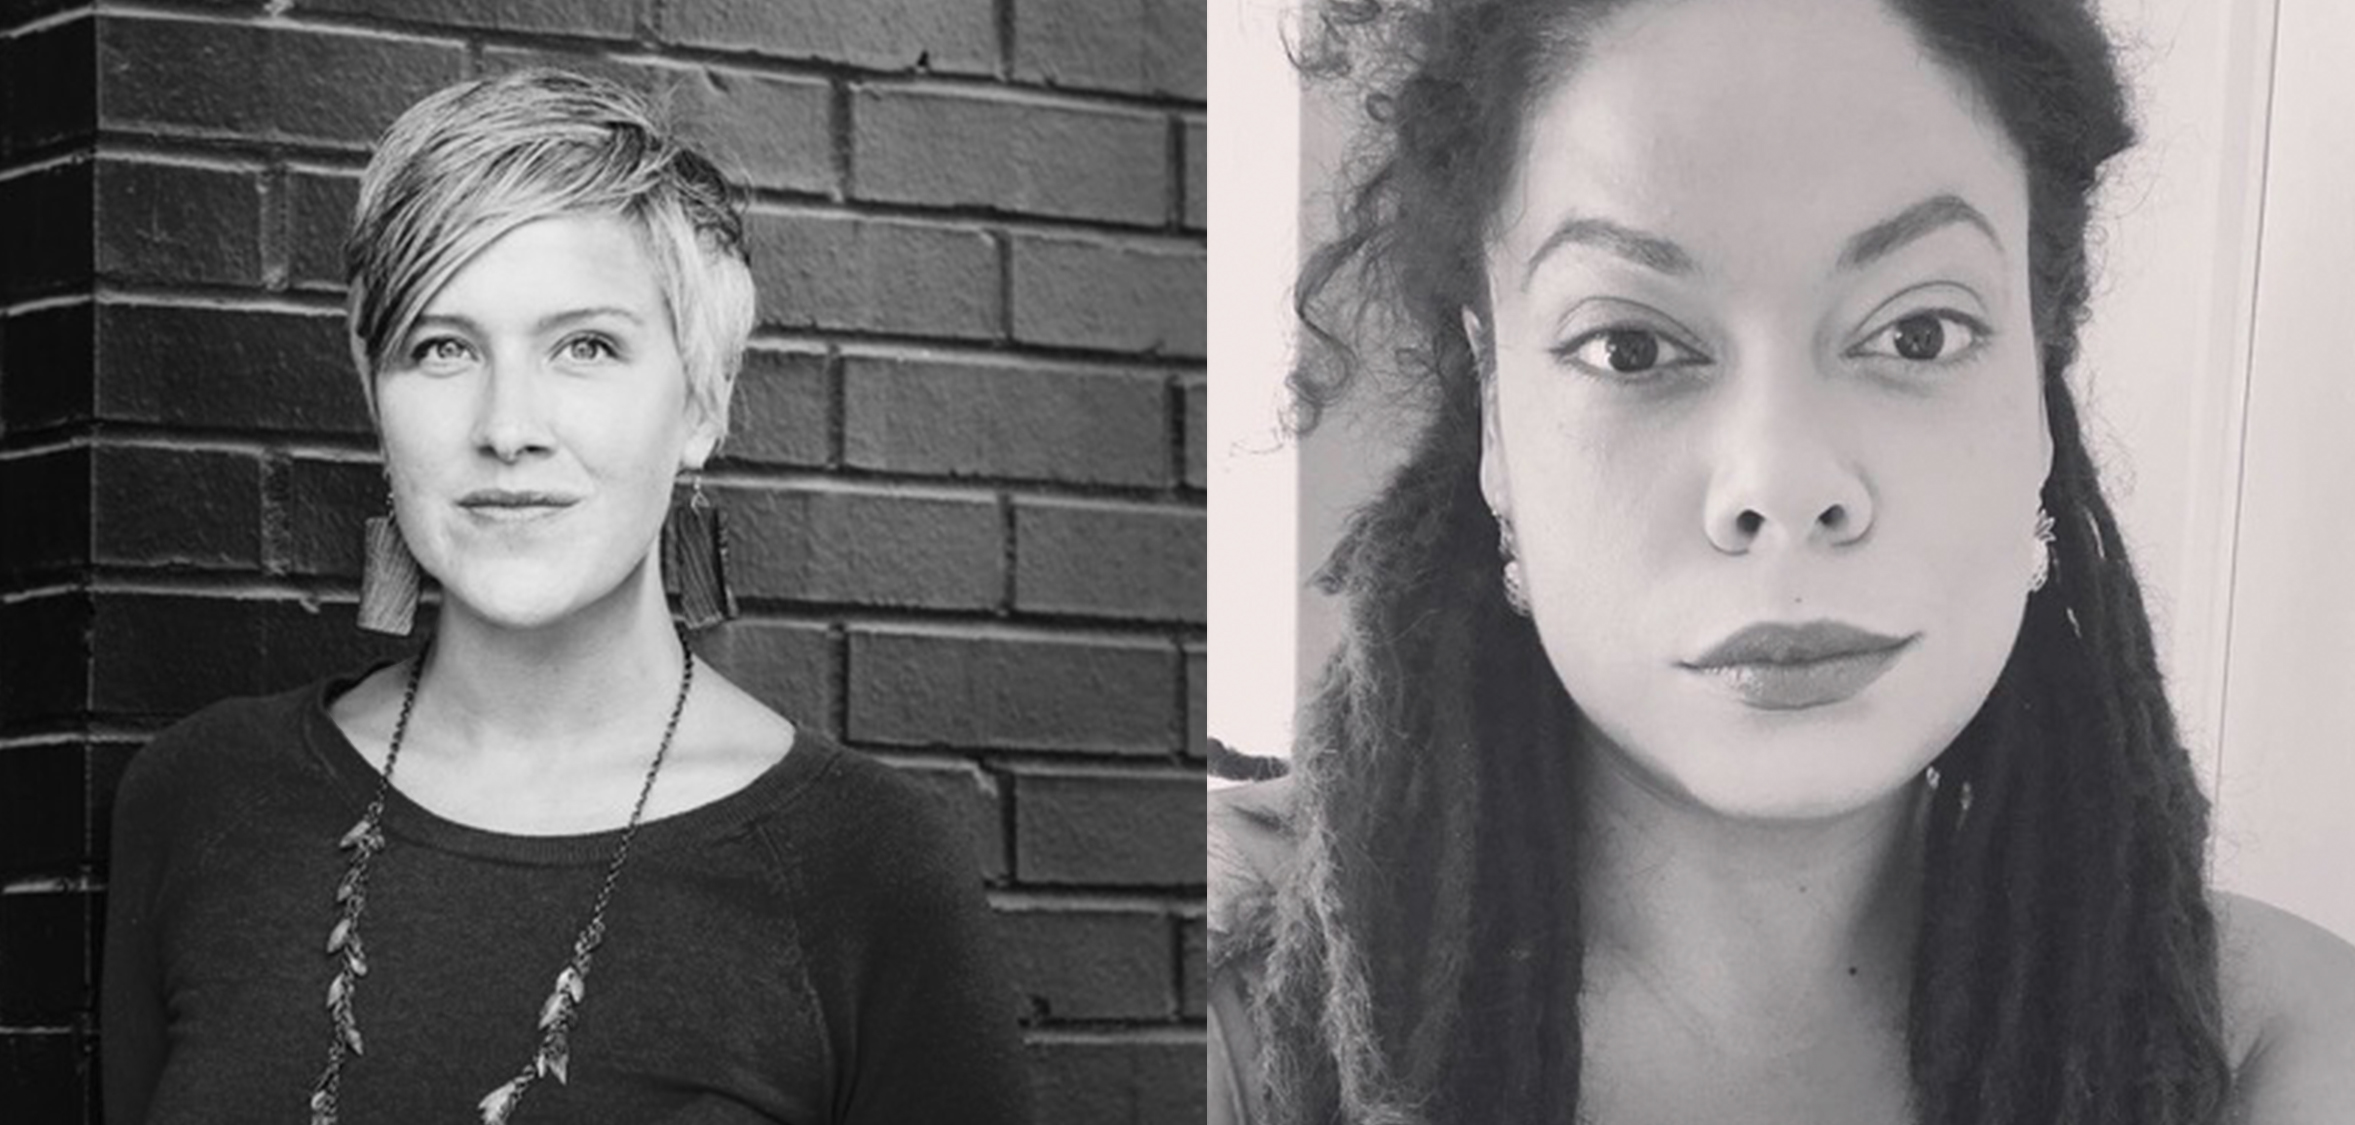 Side by side image of Kristi Maxwell and Joy Priest